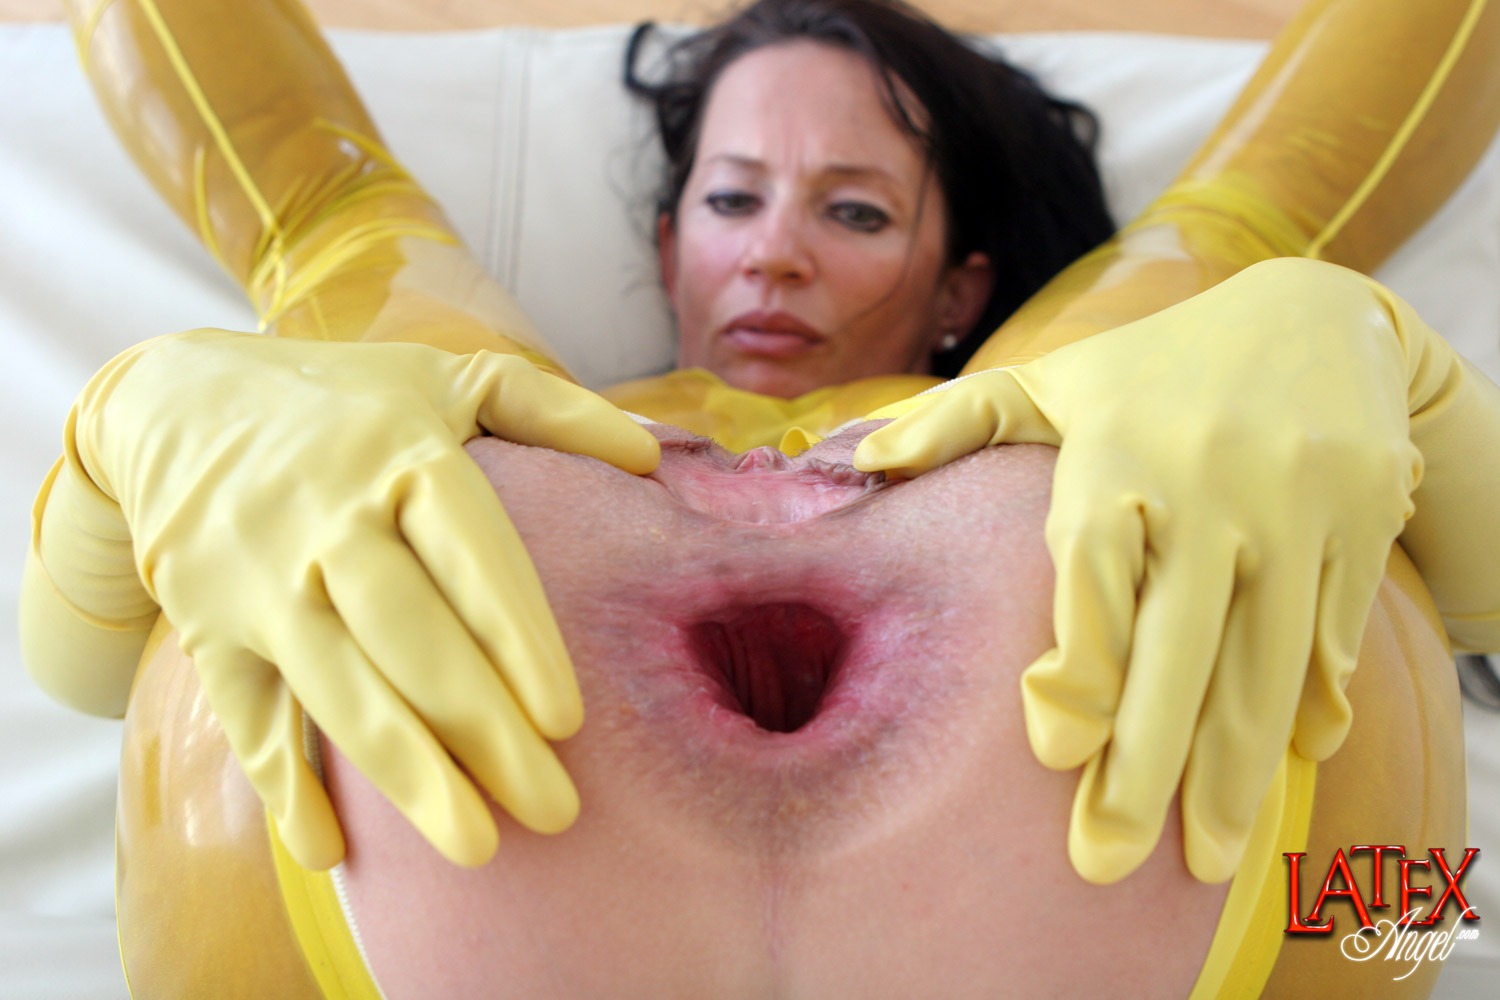 Download [LatexAngel] Oversized Zucchini